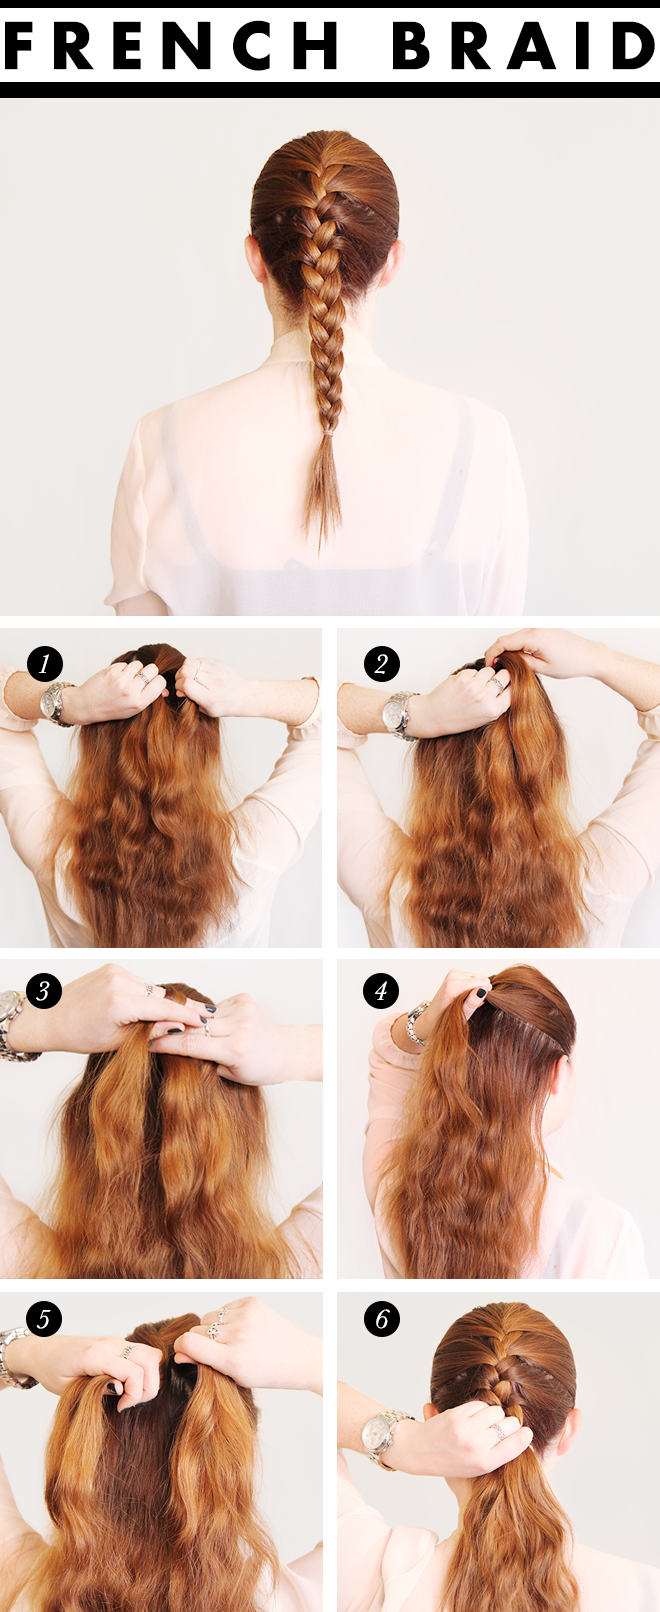 Basic Training: How to FrenchBraid